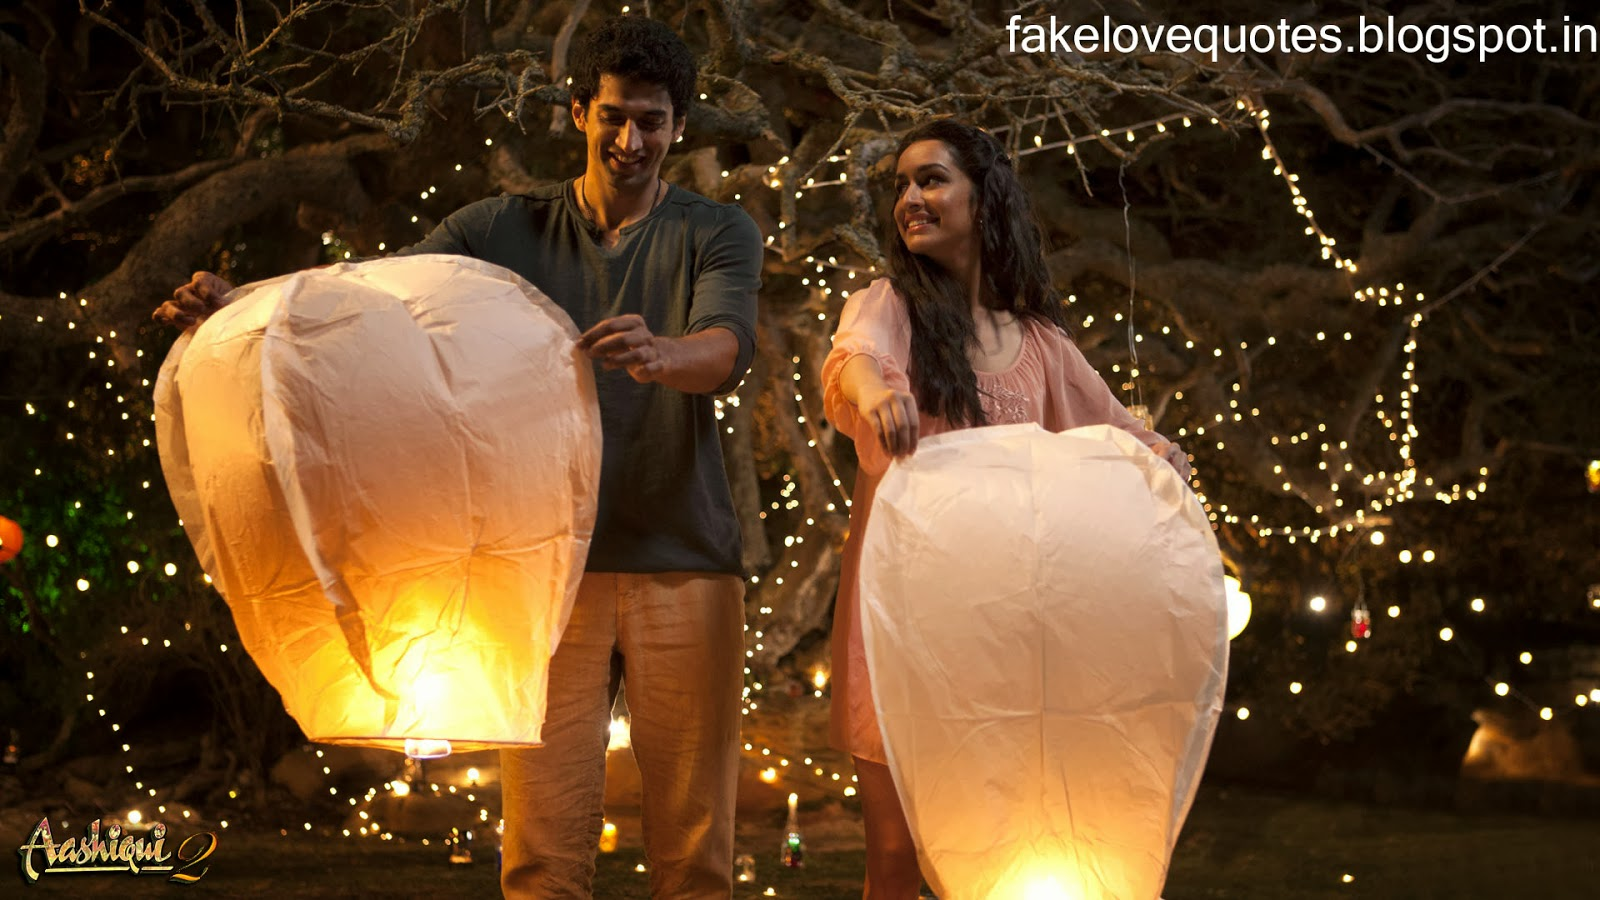 AASHIQUi 2 HD WALLPAPERS | Mind Free and Motivation, Fake ...